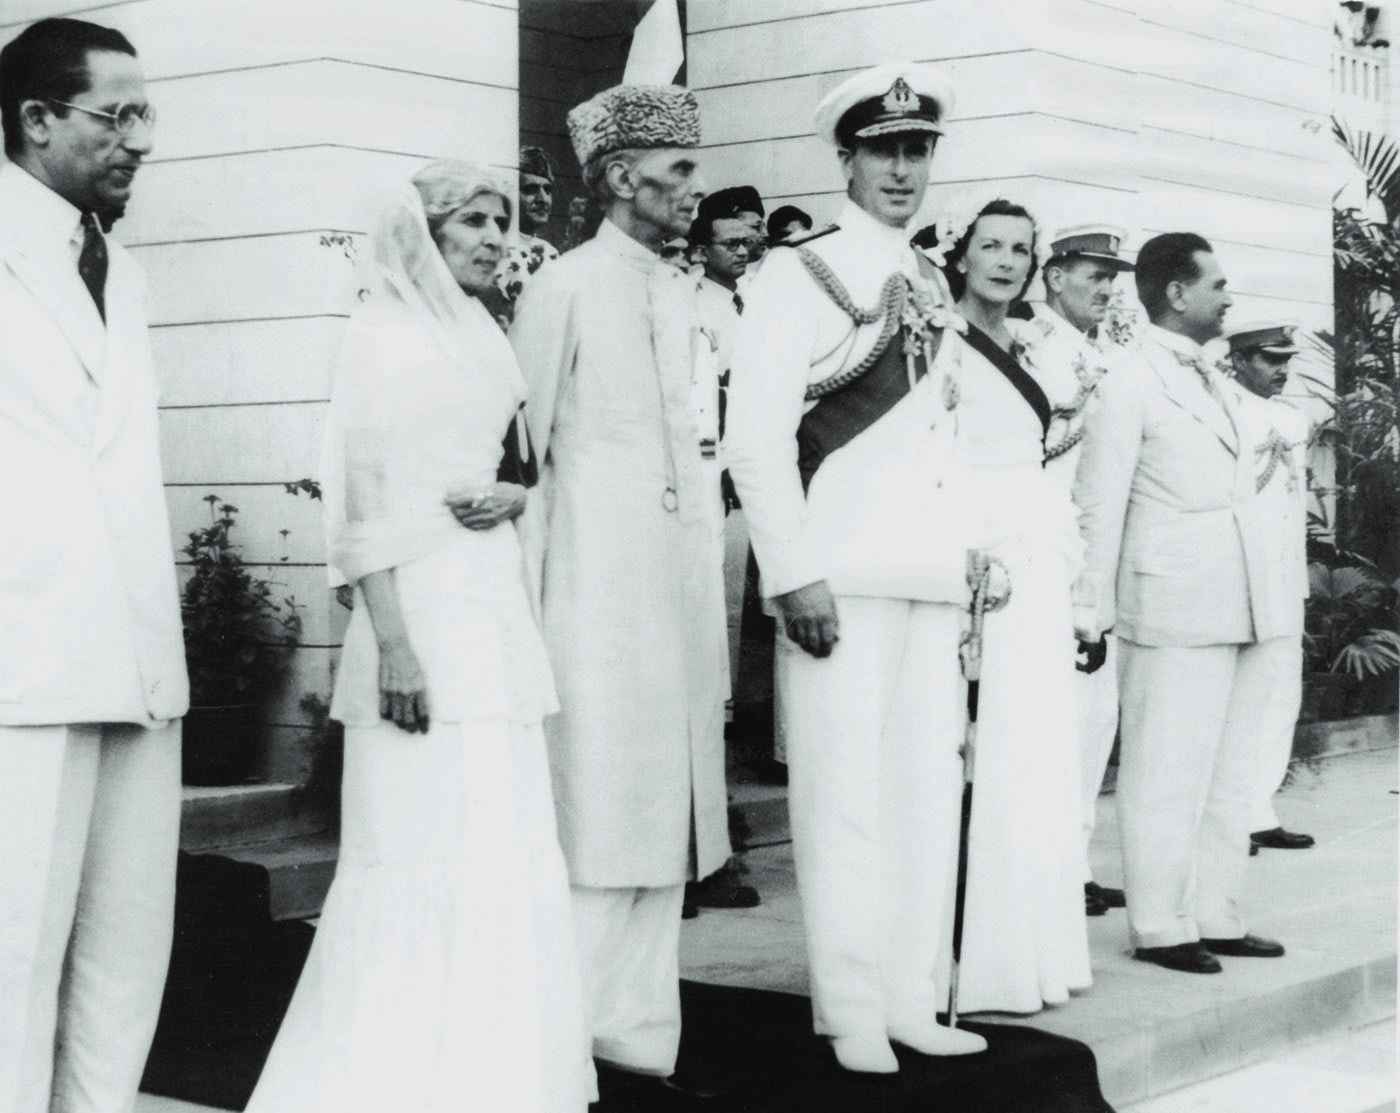 Quaid-i-Azam Mohammad Ali Jinnah, Miss Fatima Jinnah, Lord Louis Mountbatten and Lady Edwina Mountbatten face jubilant crowds as they leave the Constituent Assembly. — Courtesy Directorate of Electronic Media and Publications [DEMP], Ministry of Information Broadcasting & National Heritage, Islamabad